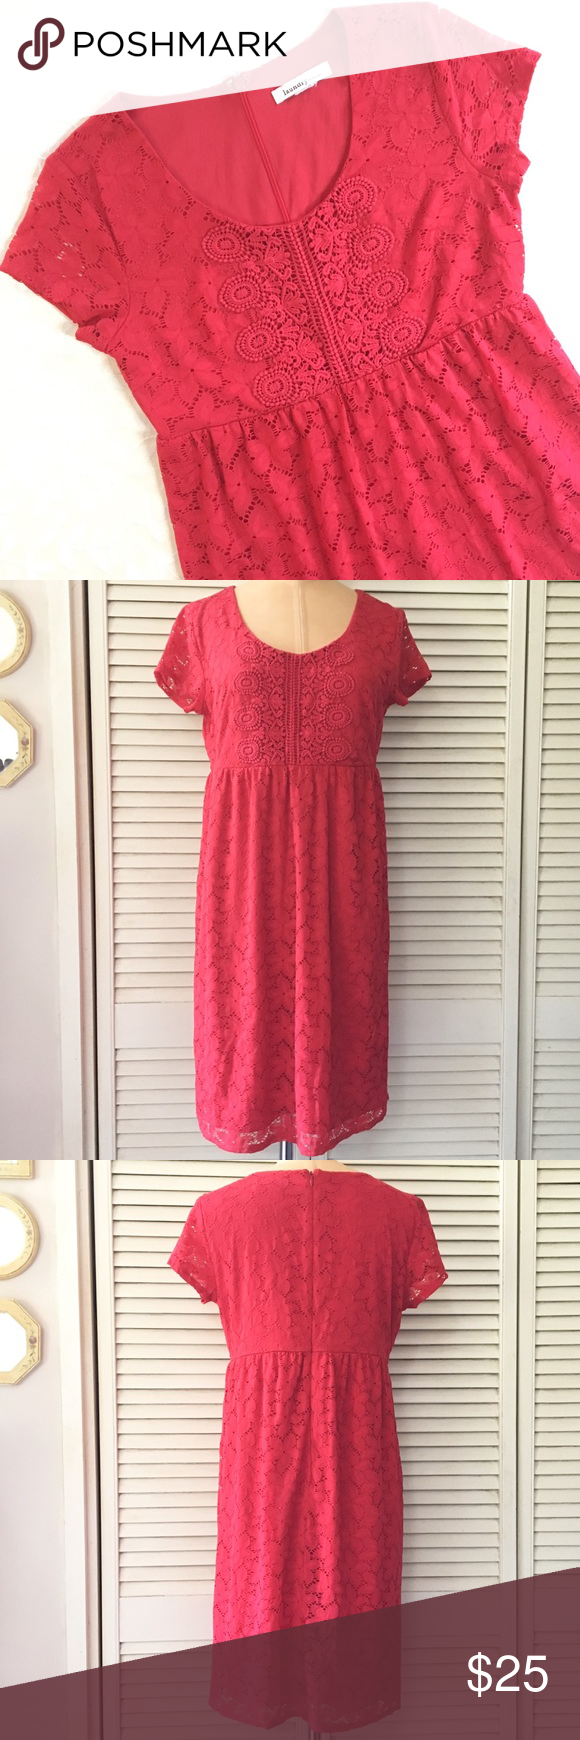 Laundry by Design Women s Red Dress - Size tag has been removed Size  SMALL  (based on measurements) - Please see measurements to ensure a proper fit -  Lace ... 85d30a6751